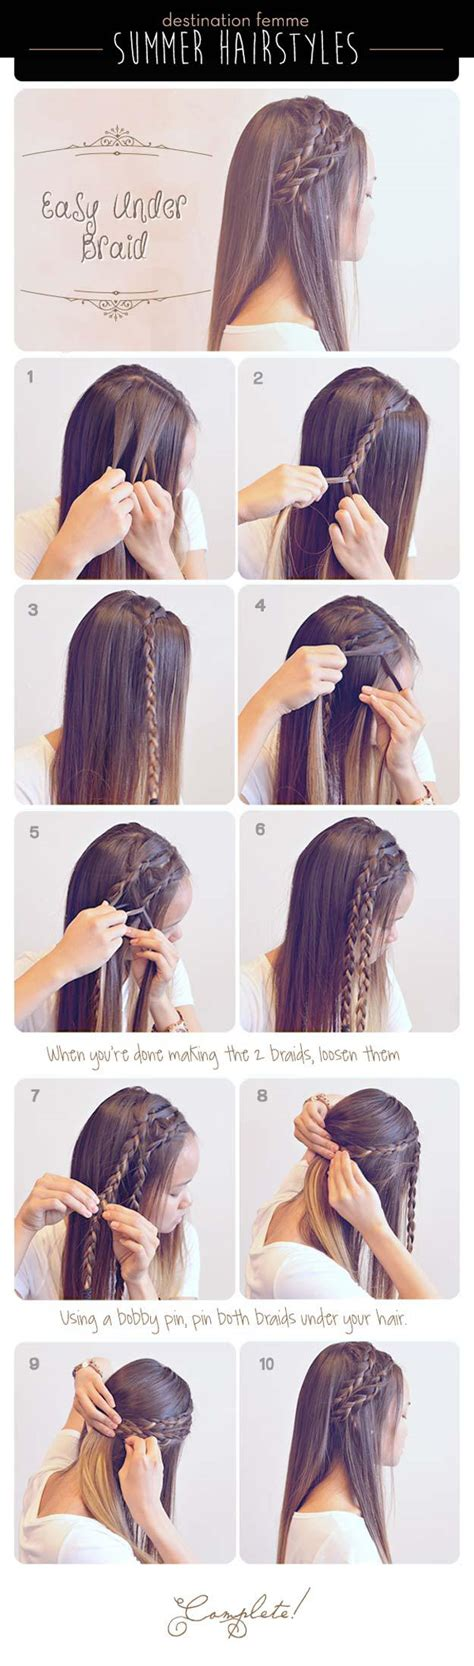 Cute Braided Hairstyles For Wet Hair Inspirational Cute | inspiring of the best cute hair braiding diy projects for